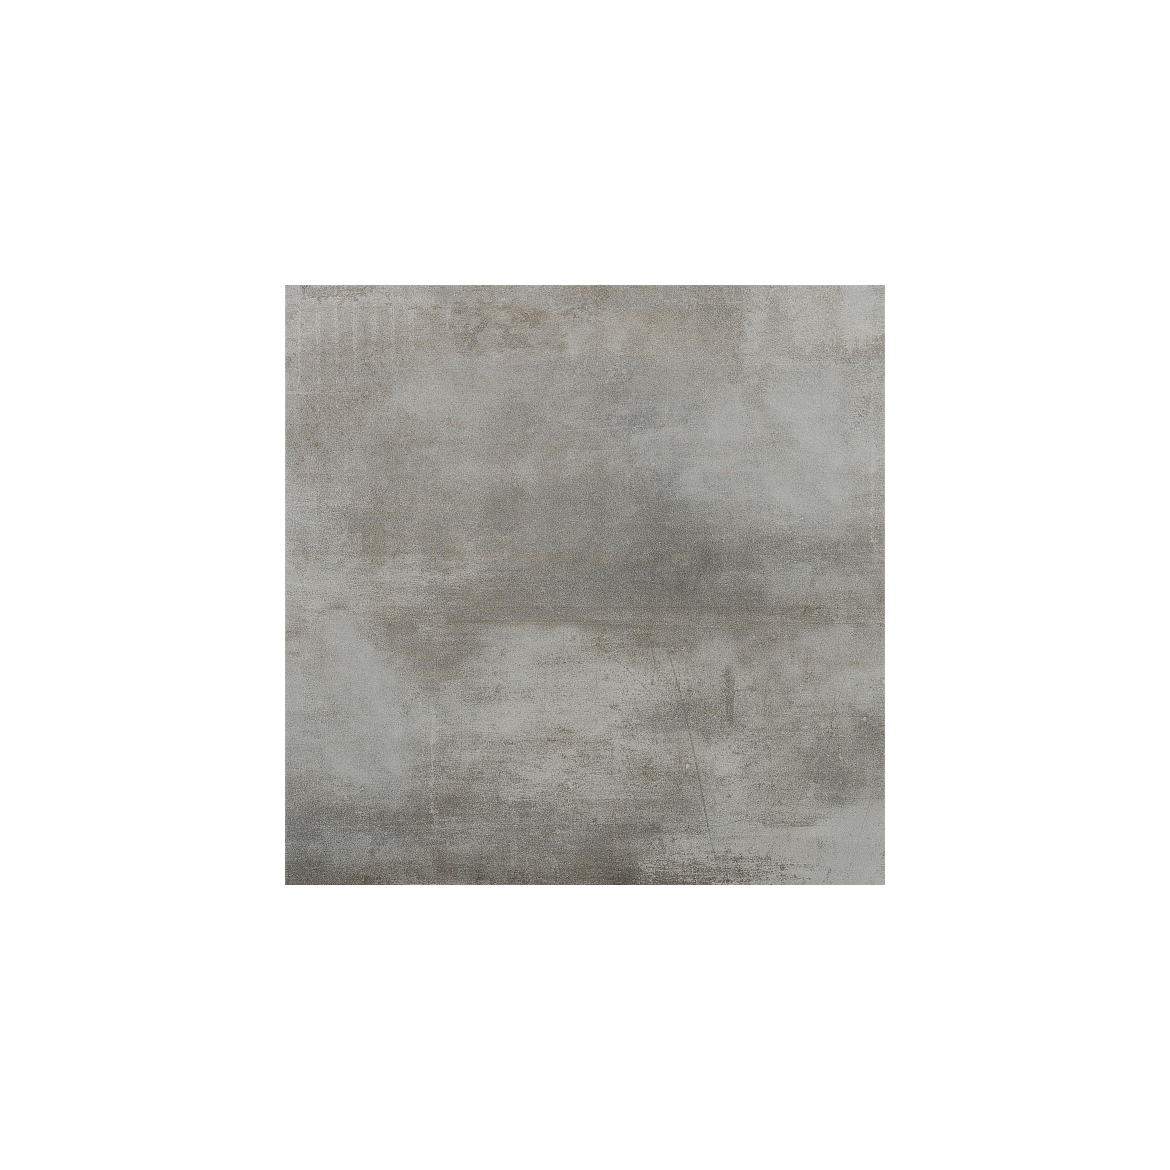 https://cerdesign.pl/296-large_default/p1076-azulev-reaction-gris-45x45.jpg